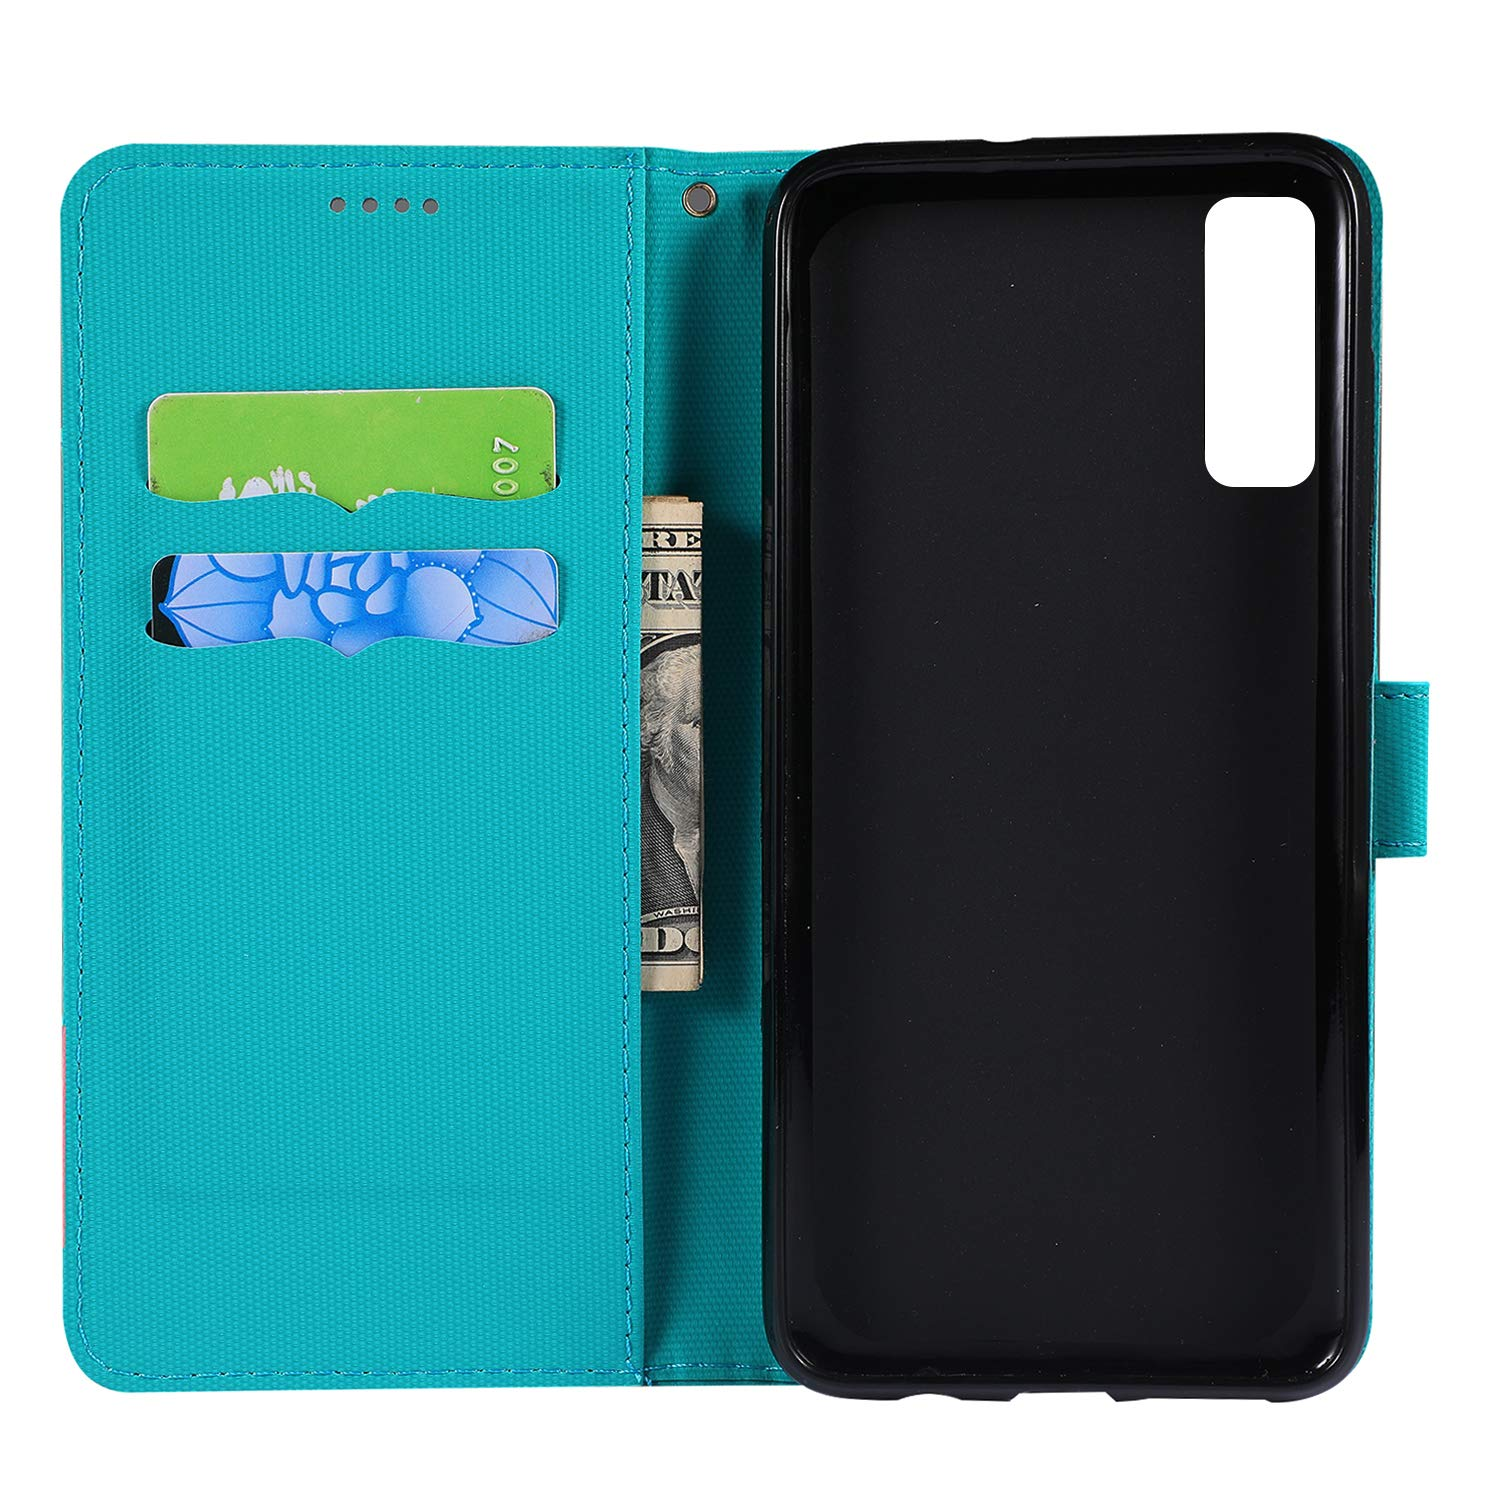 Lomogo Samsung Galaxy A7 2018 2018 - LOGHU040078 Blue // A750 Case Leather Wallet Case with Kickstand Card Holder Shockproof Flip Case Cover for Galaxy A7